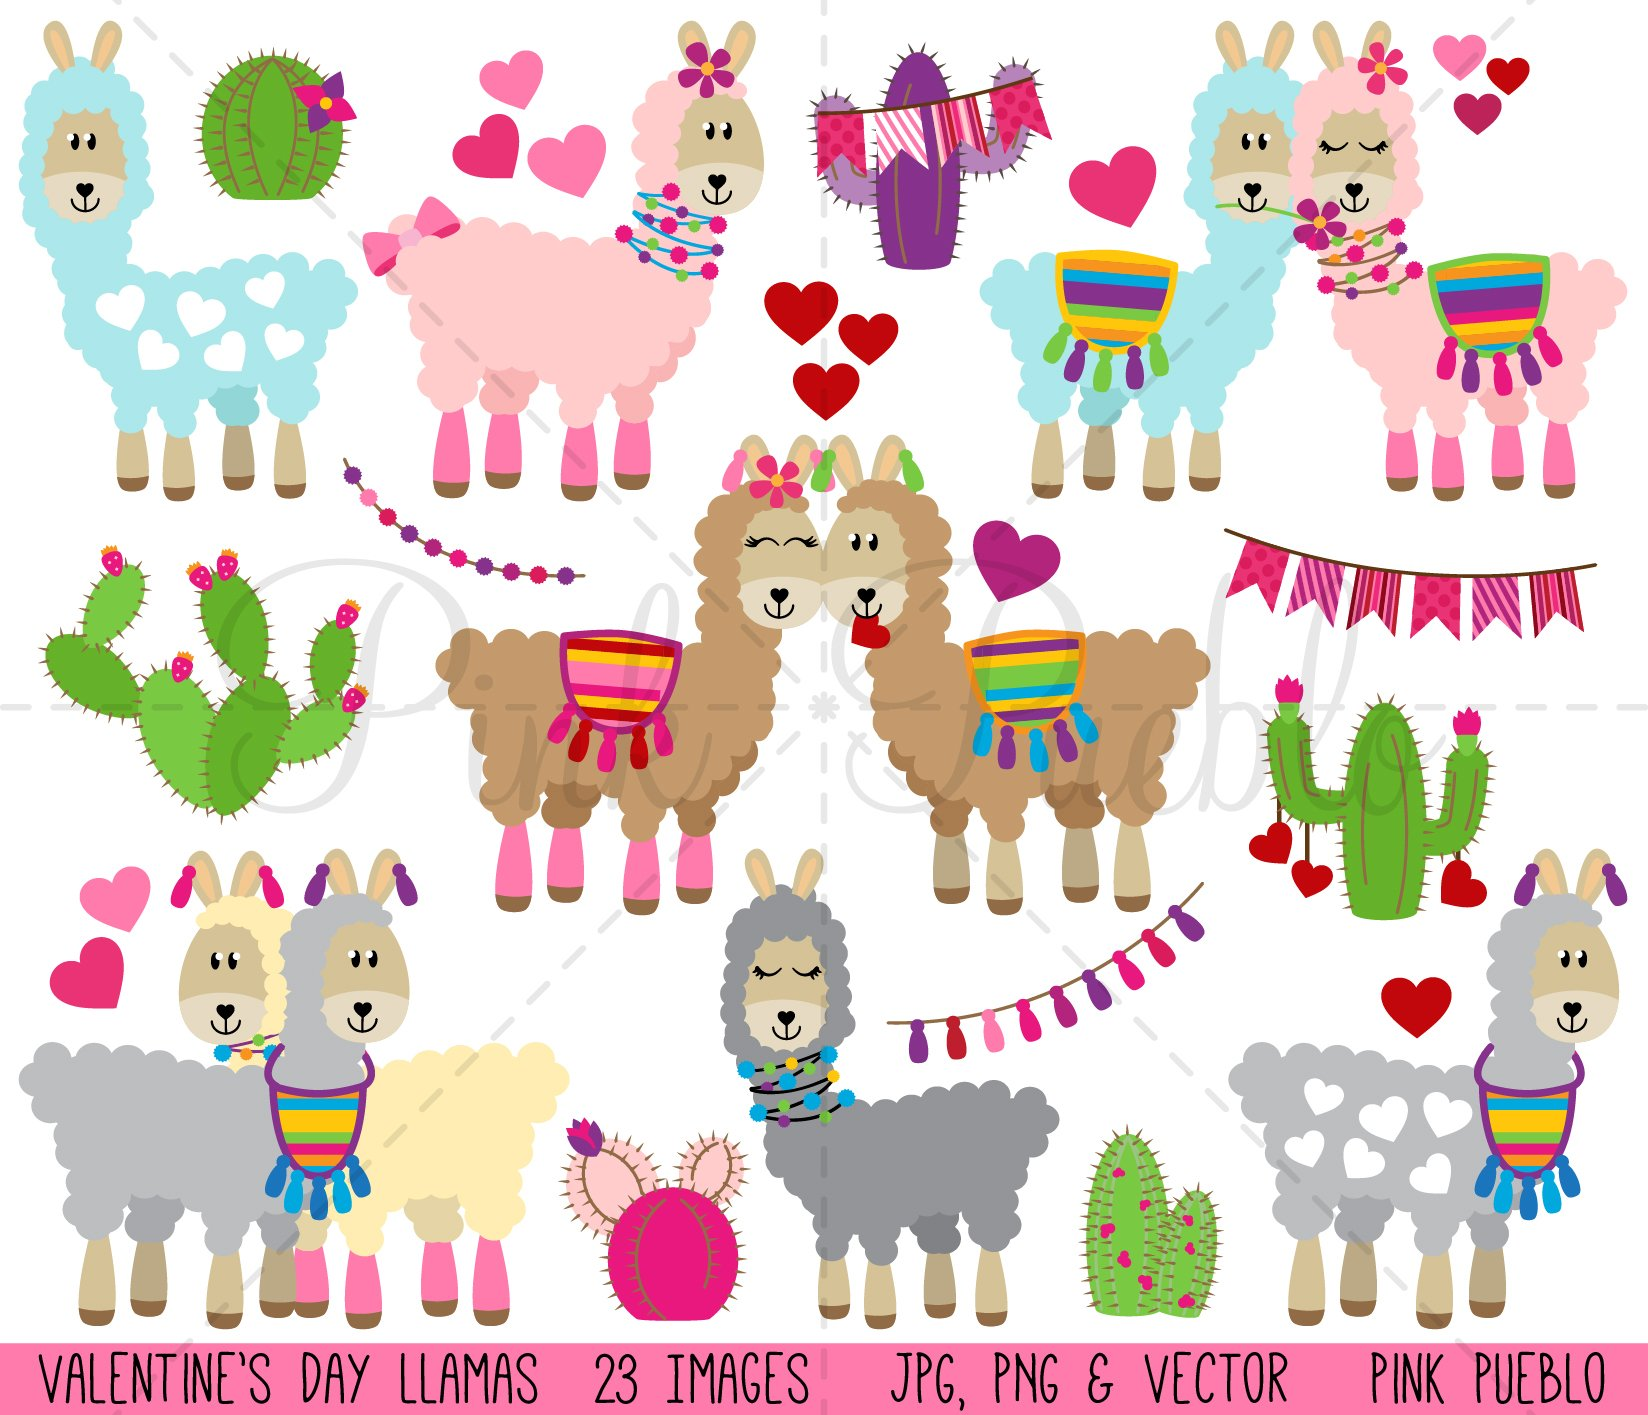 Valentine's Day Llama Clipart/Vector ~ Illustrations ...